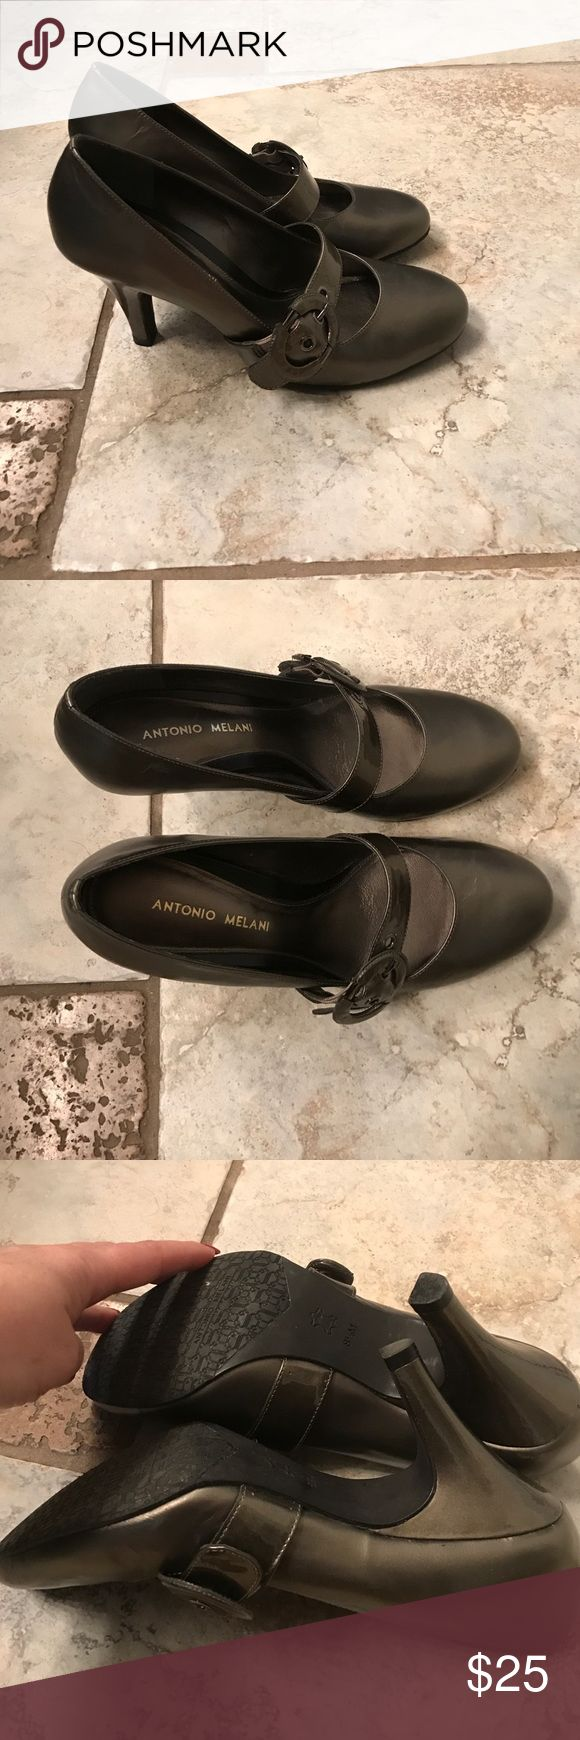 Antonio Melani slip on high heels- with buckle. Beautiful Antonio Melani slip on high heel shoe. With buckle. Color is a Silver/Copper or grayish-- hard to describe, very pretty. Never worn, no damage. ANTONIO MELANI Shoes Heels